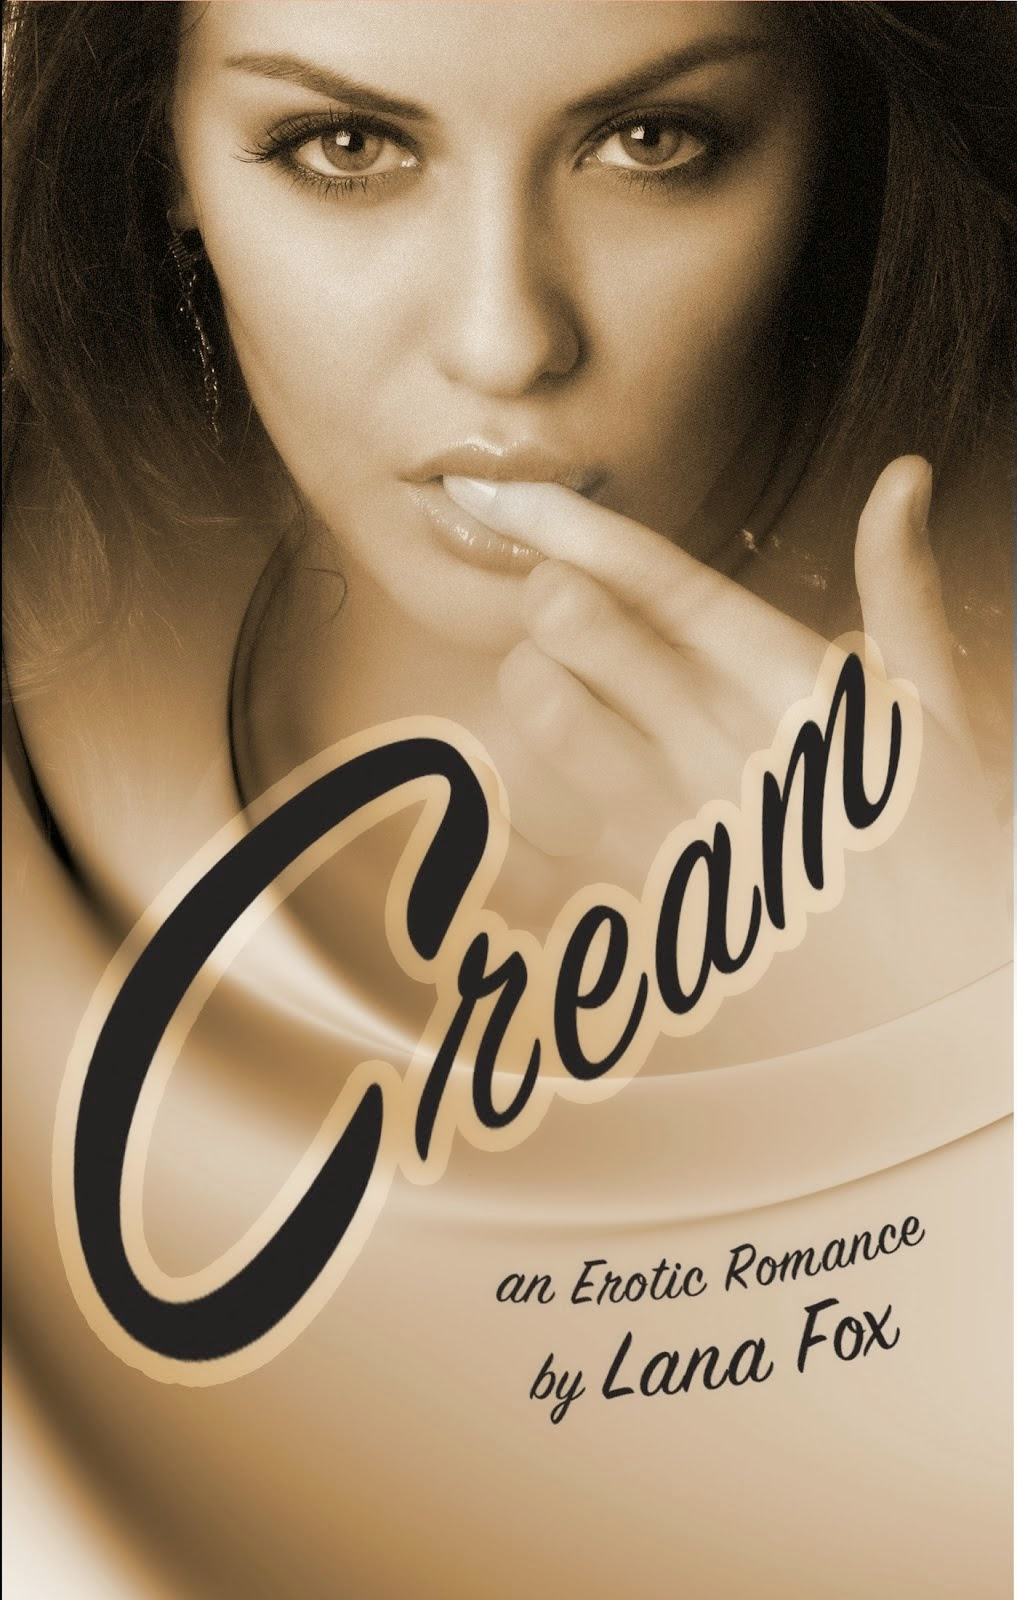 Cream: An Erotic Romance